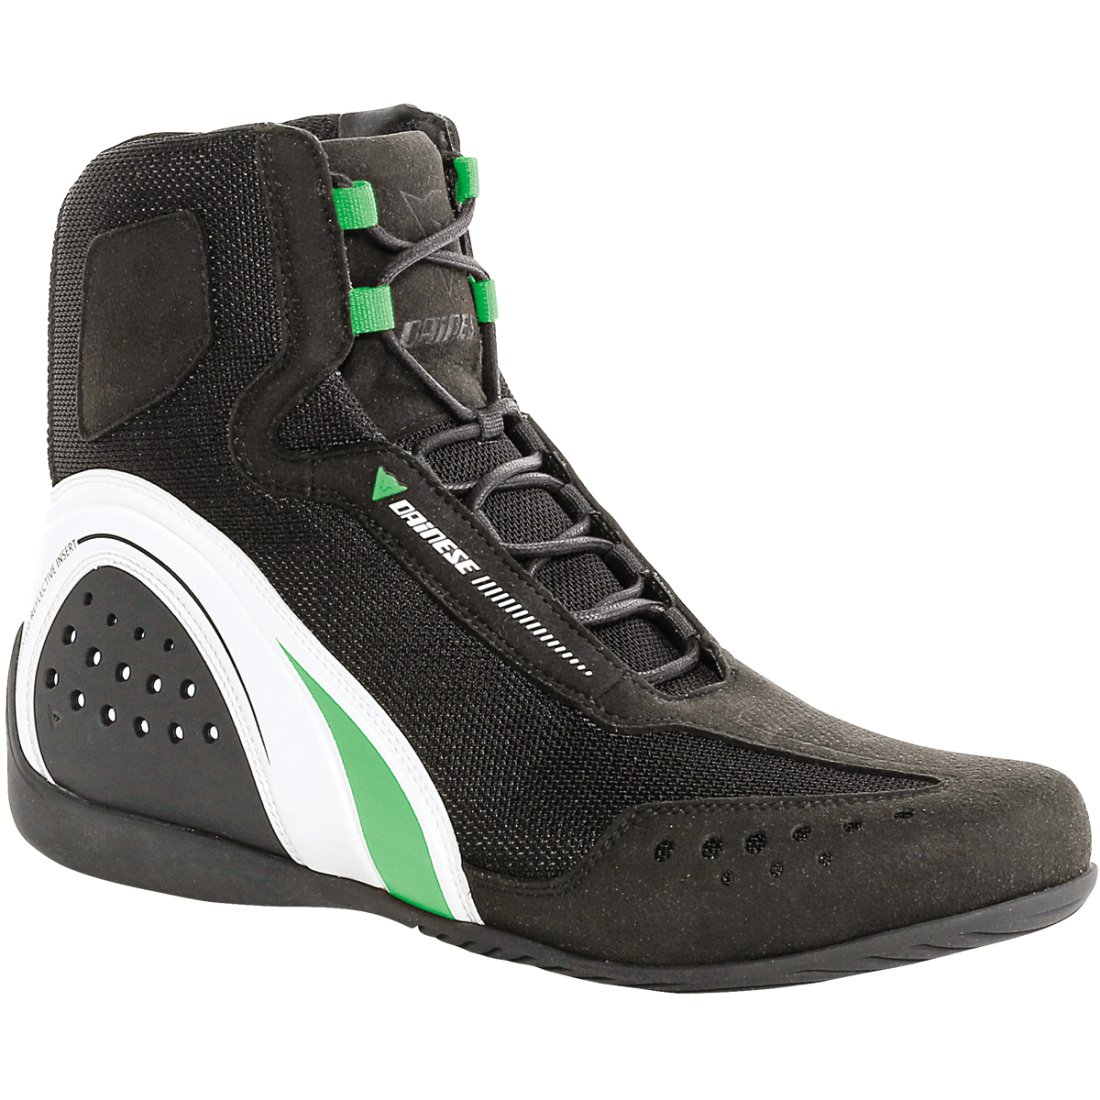 DAINESE Motorshoe Air Black White Green Fluo Boots